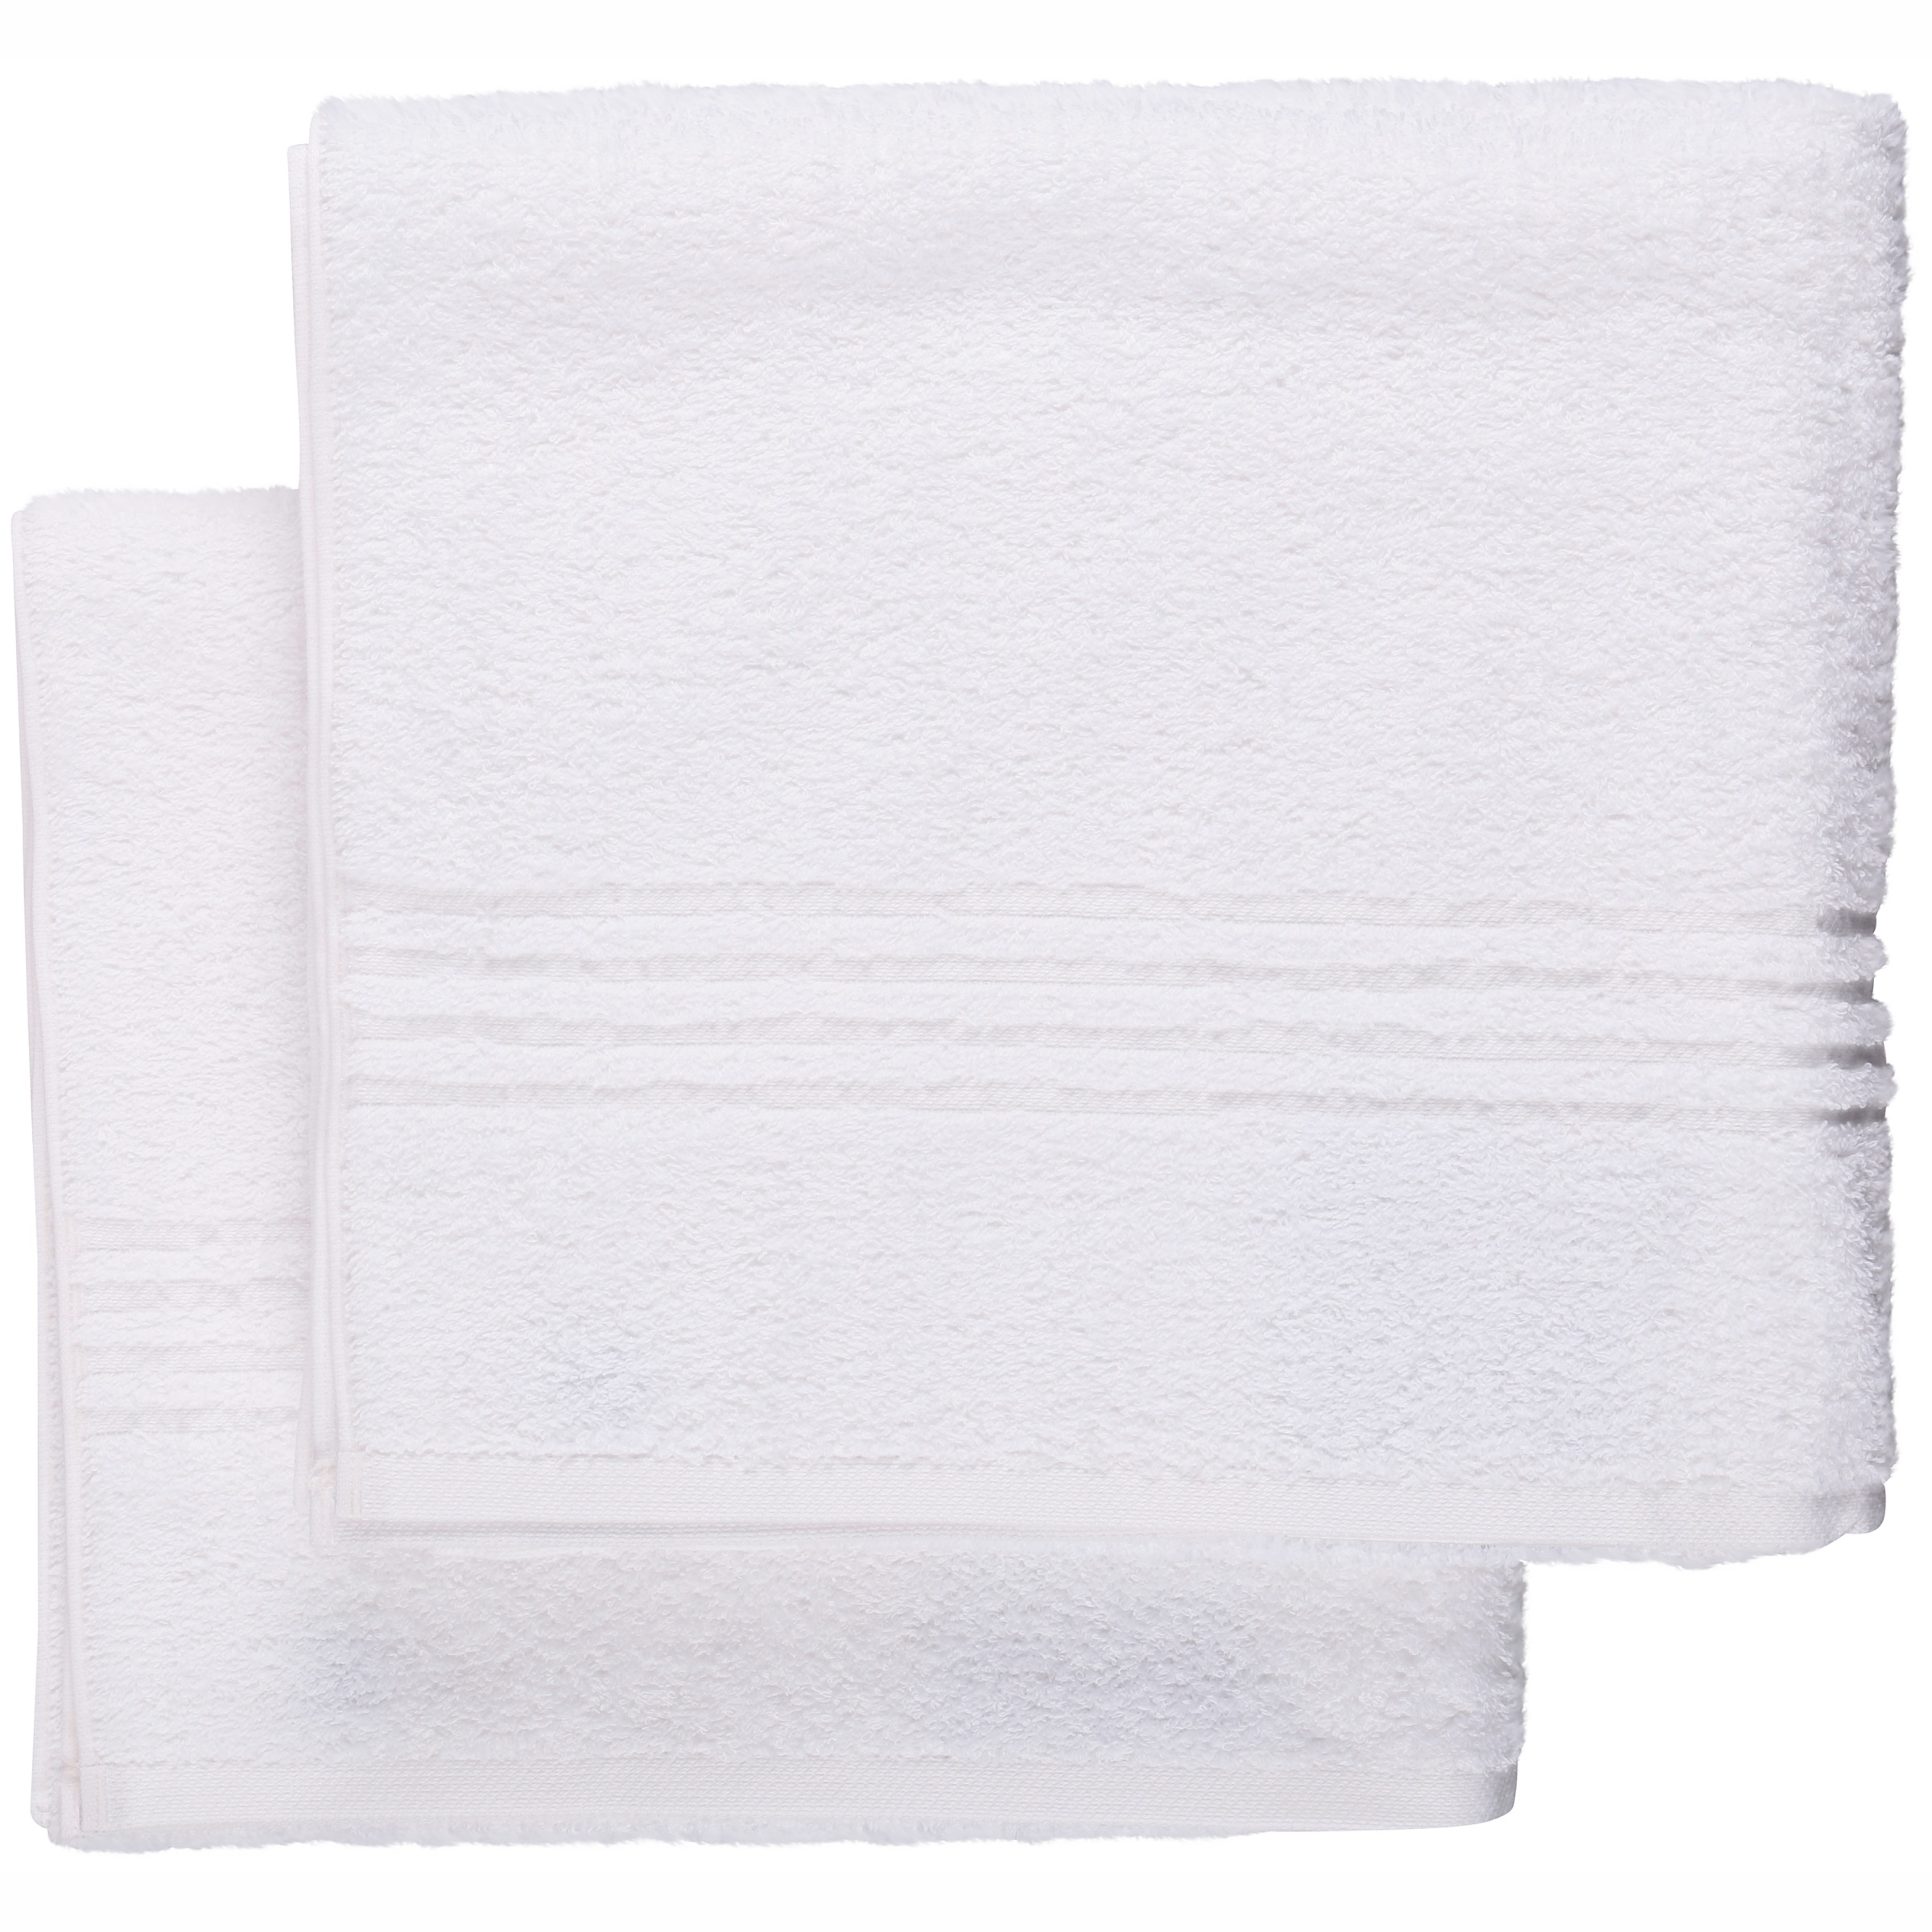 Mainstays Essential True Colors Texture Bath Towel Collection 2 Piece Set by Trident Limited